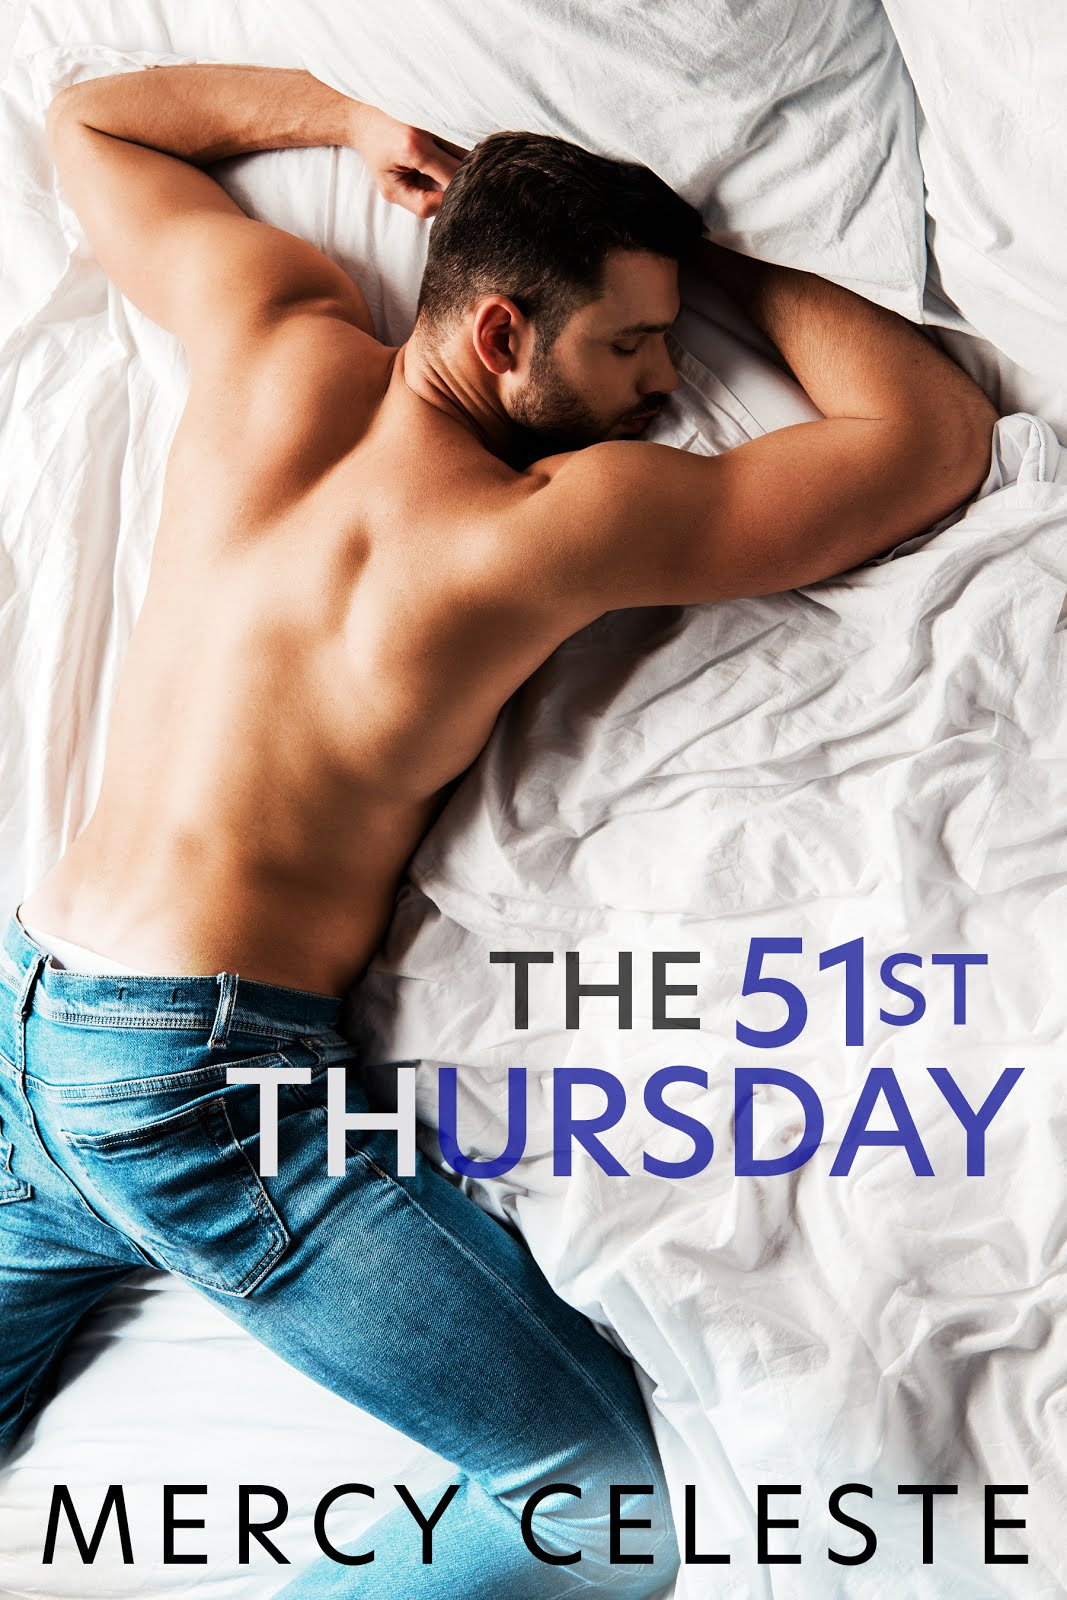 The 51st Thursday